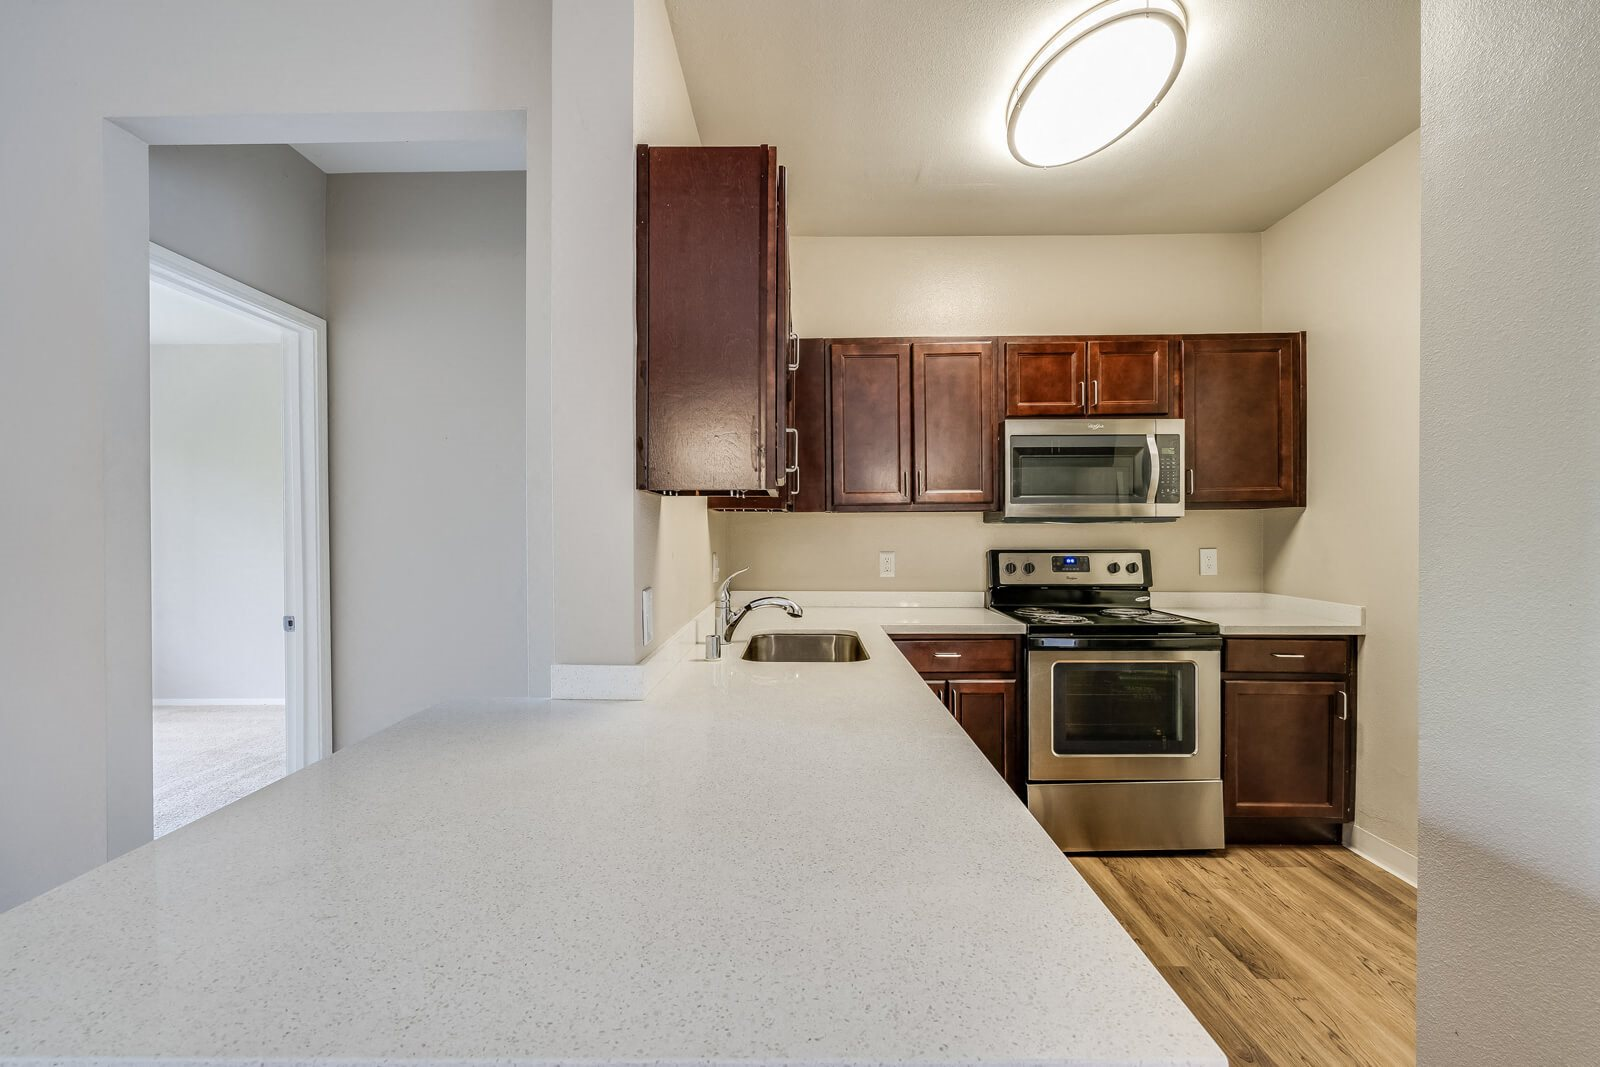 White Quartz Counter With Custom Cabinetry In Kitchen at Pavona Apartments, 95112, CA